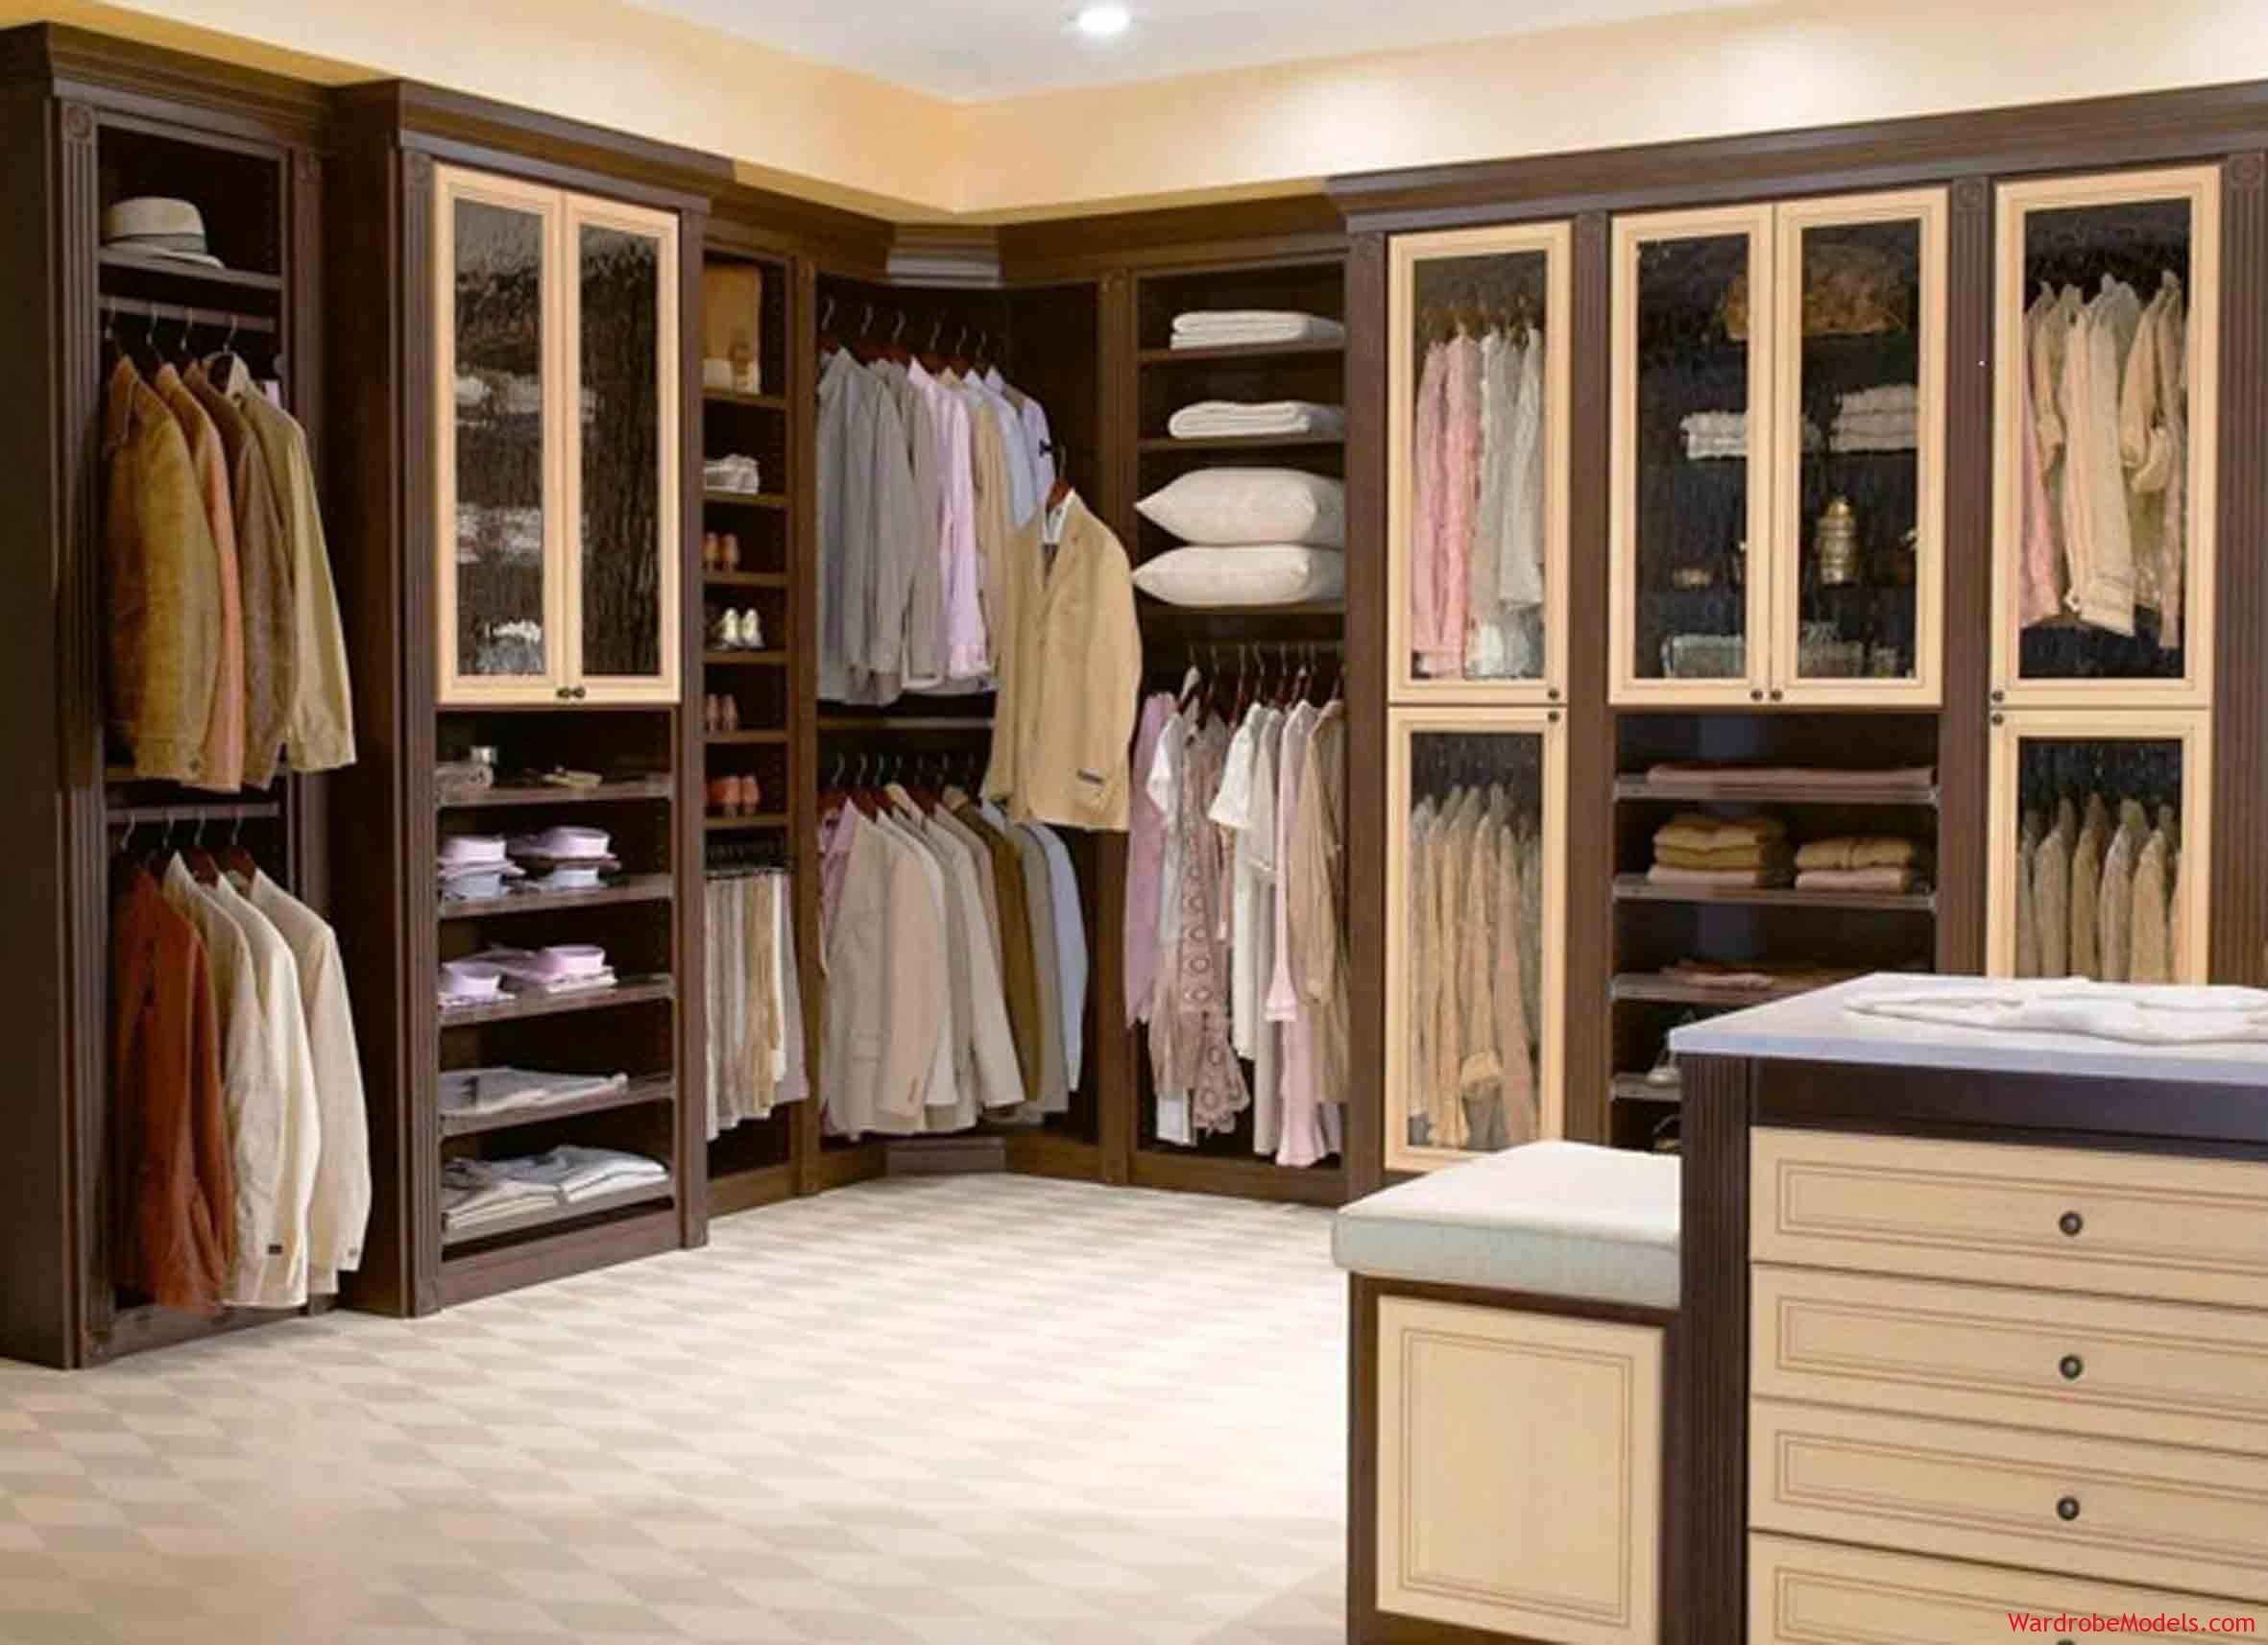 Stunning Bedroom Closet Space Savers Roselawnlutheran Regarding Space Saving Wardrobes (Image 22 of 25)